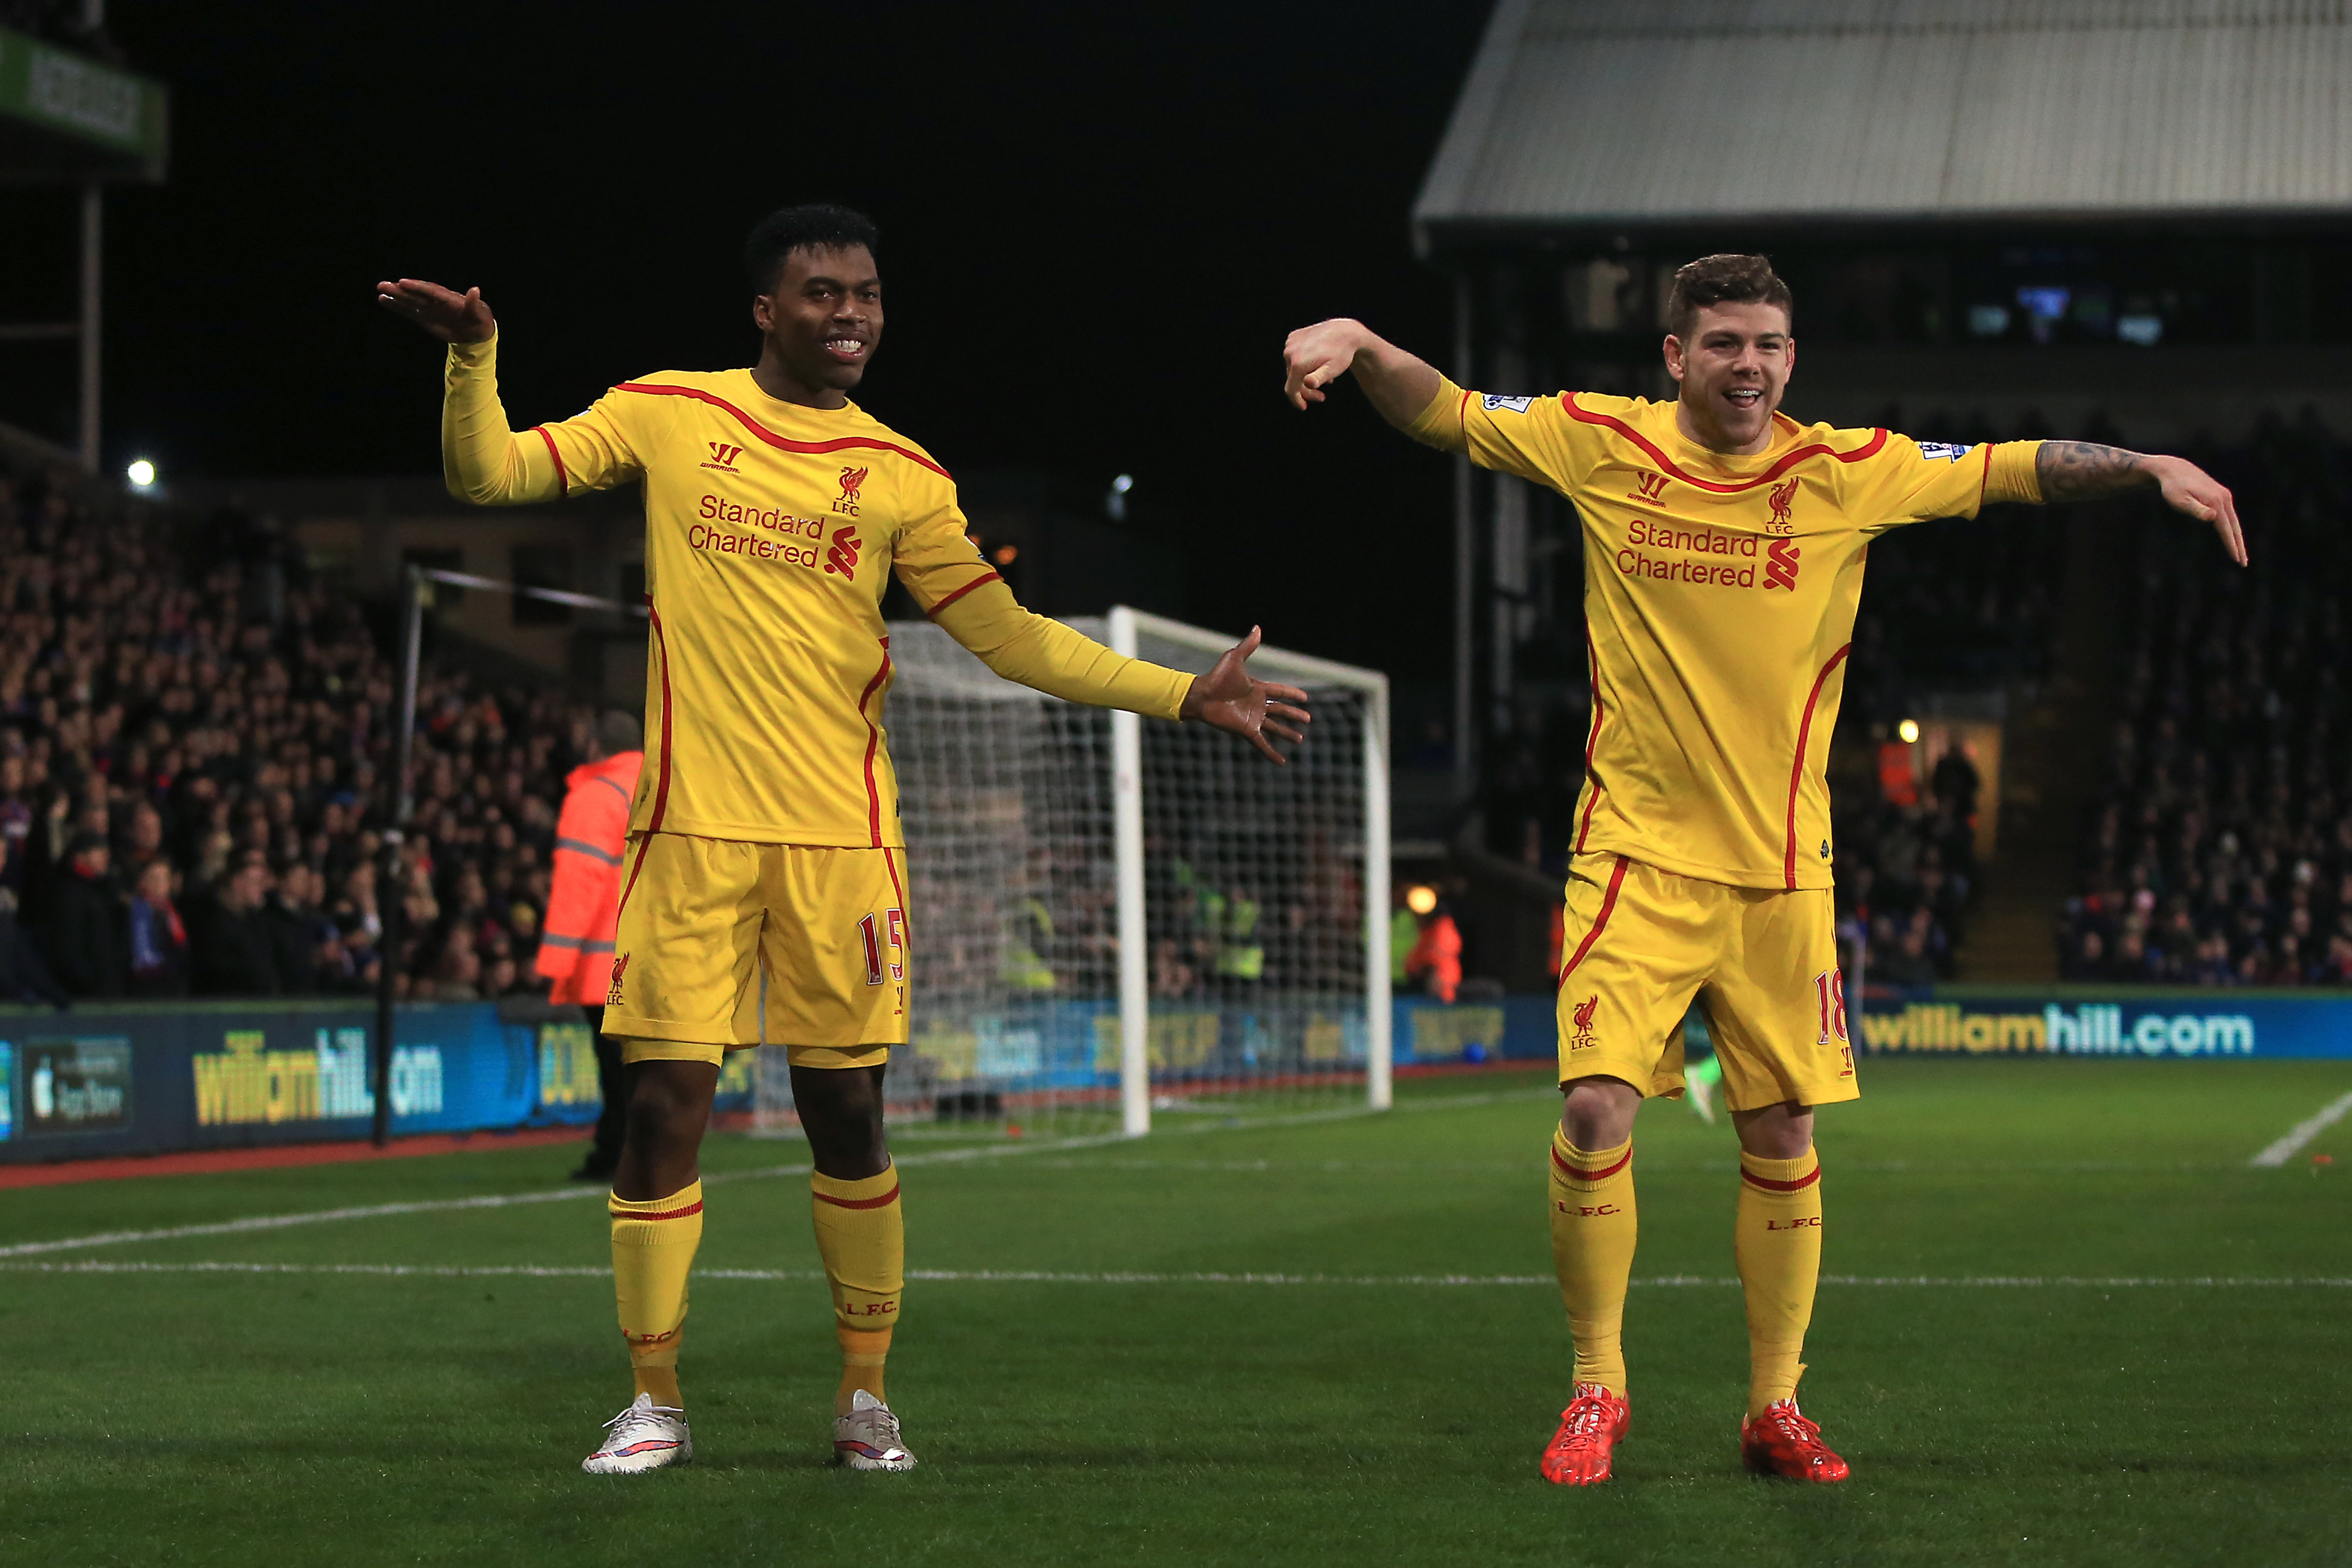 Moreno and Sturridge celebrate a goal together. mage: PA Images